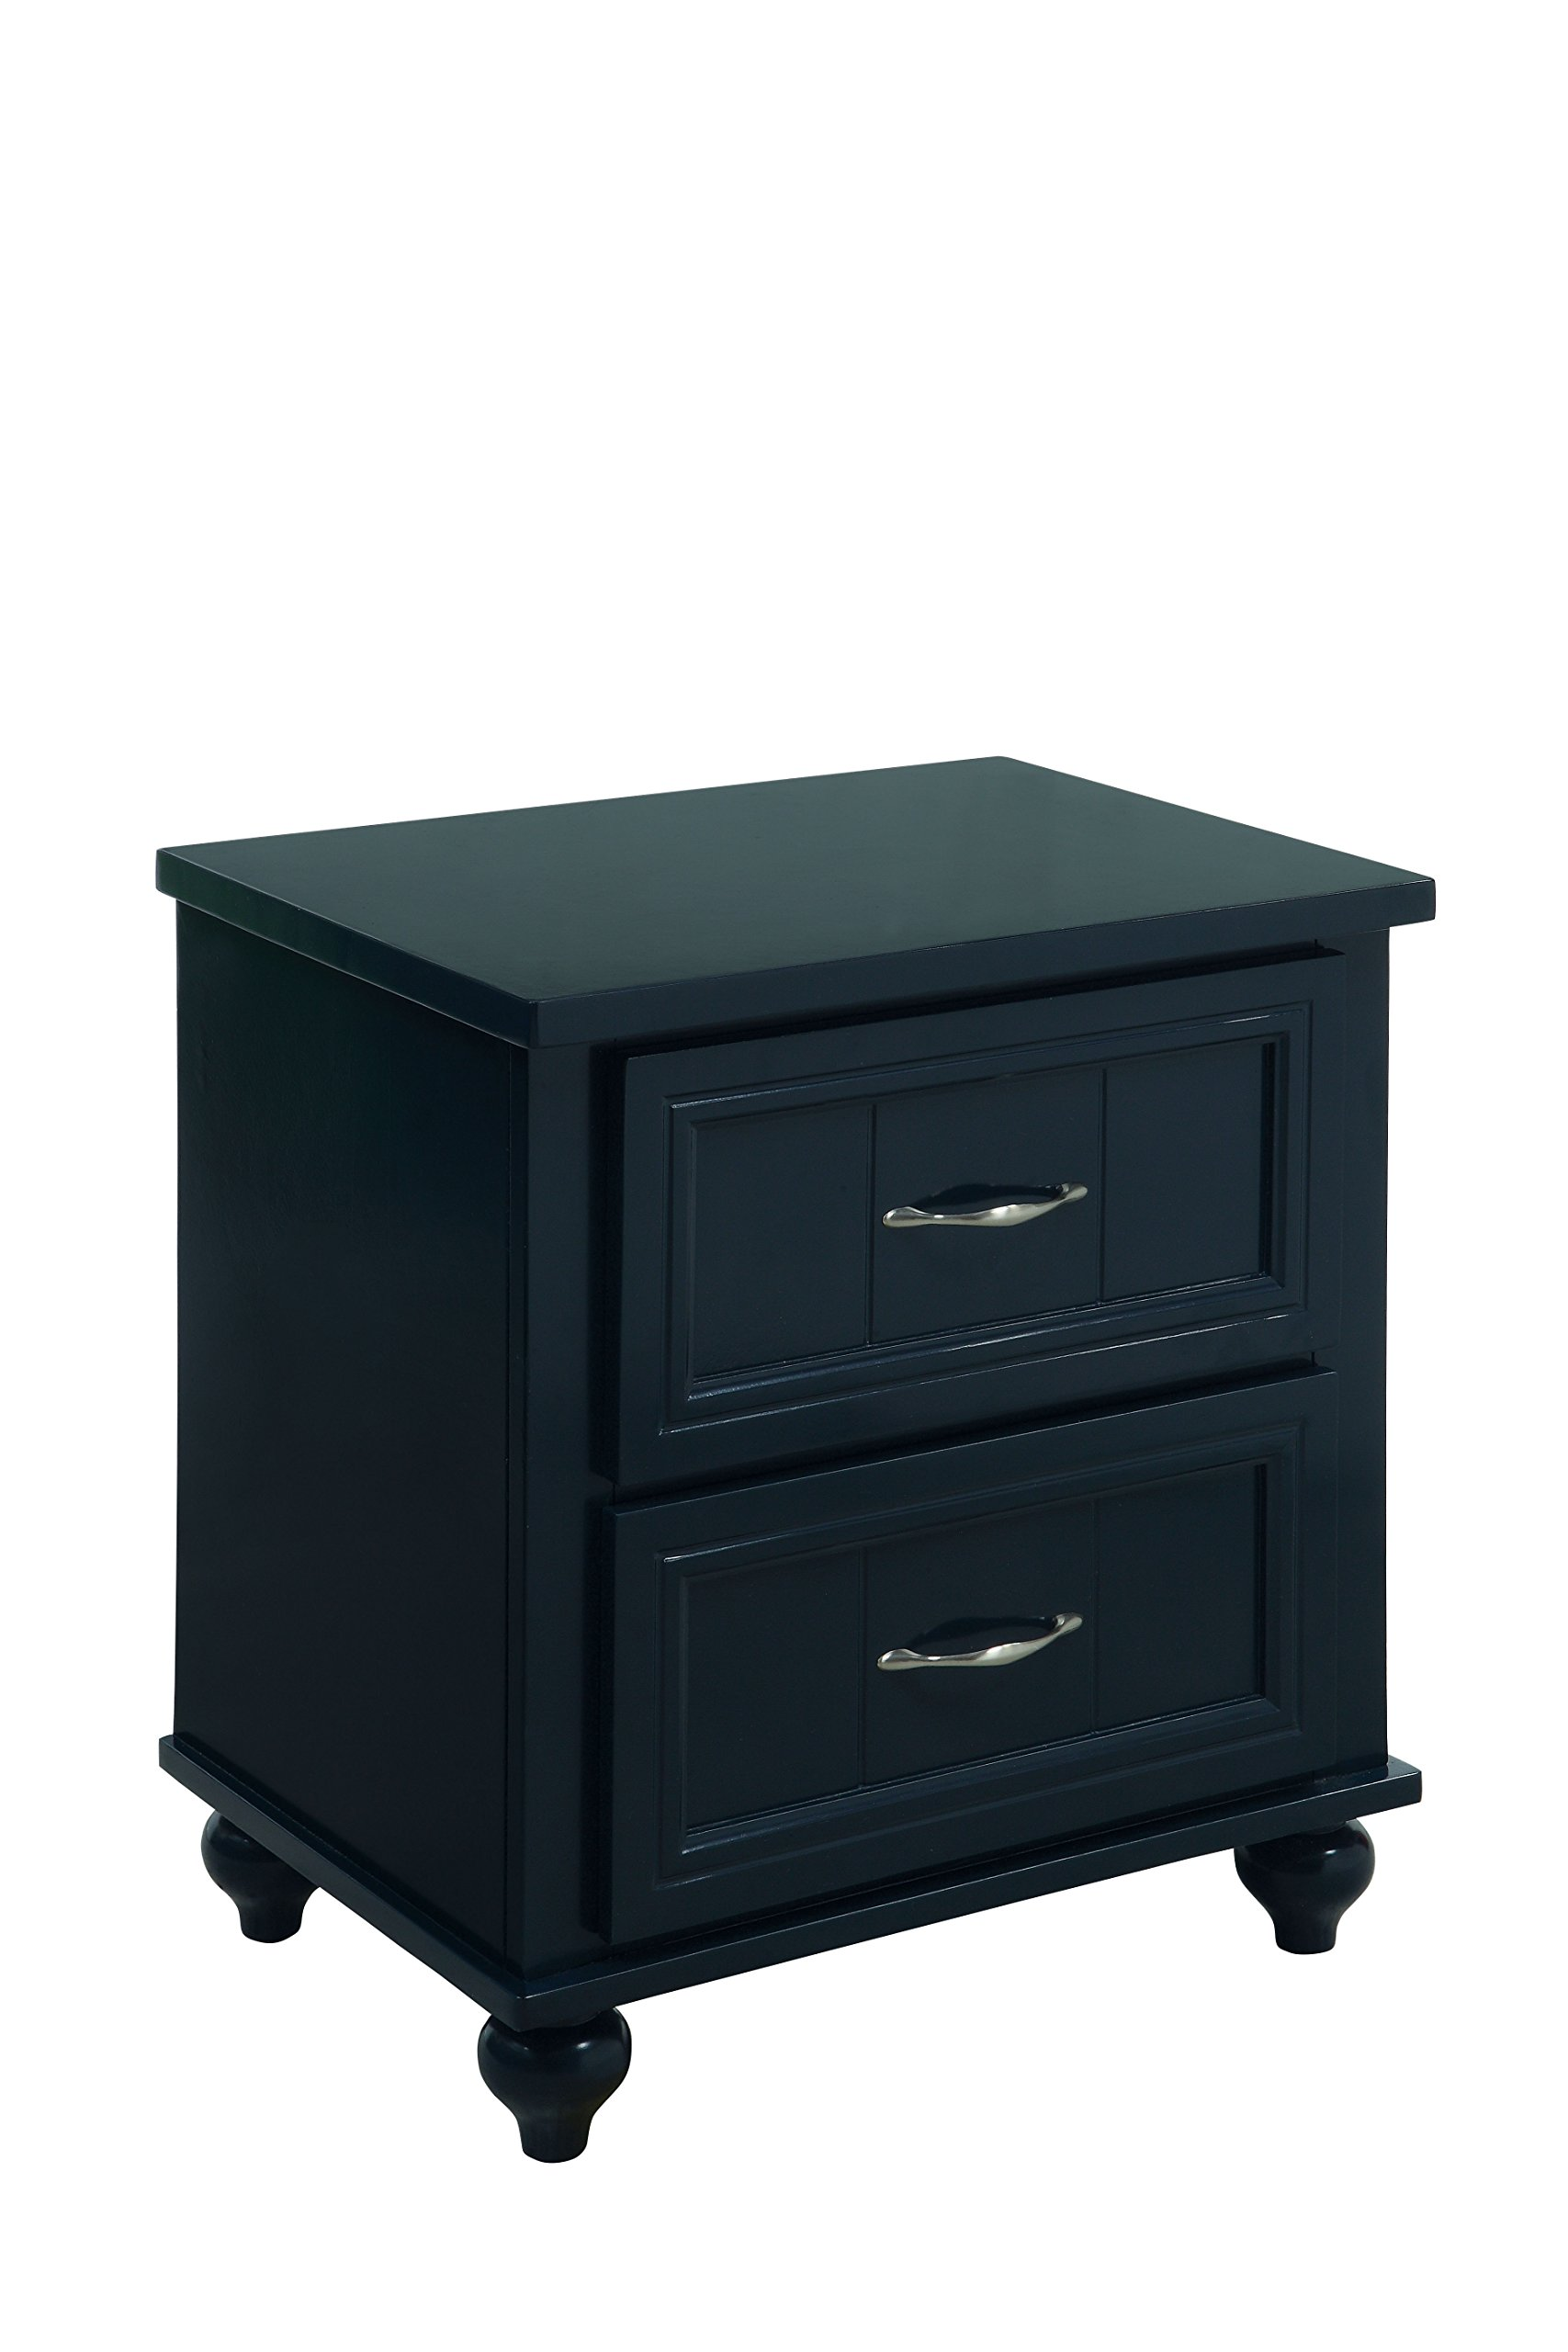 HOMES: Inside + Out Felix Transitional 2-Drawer Nightstandvy Blue